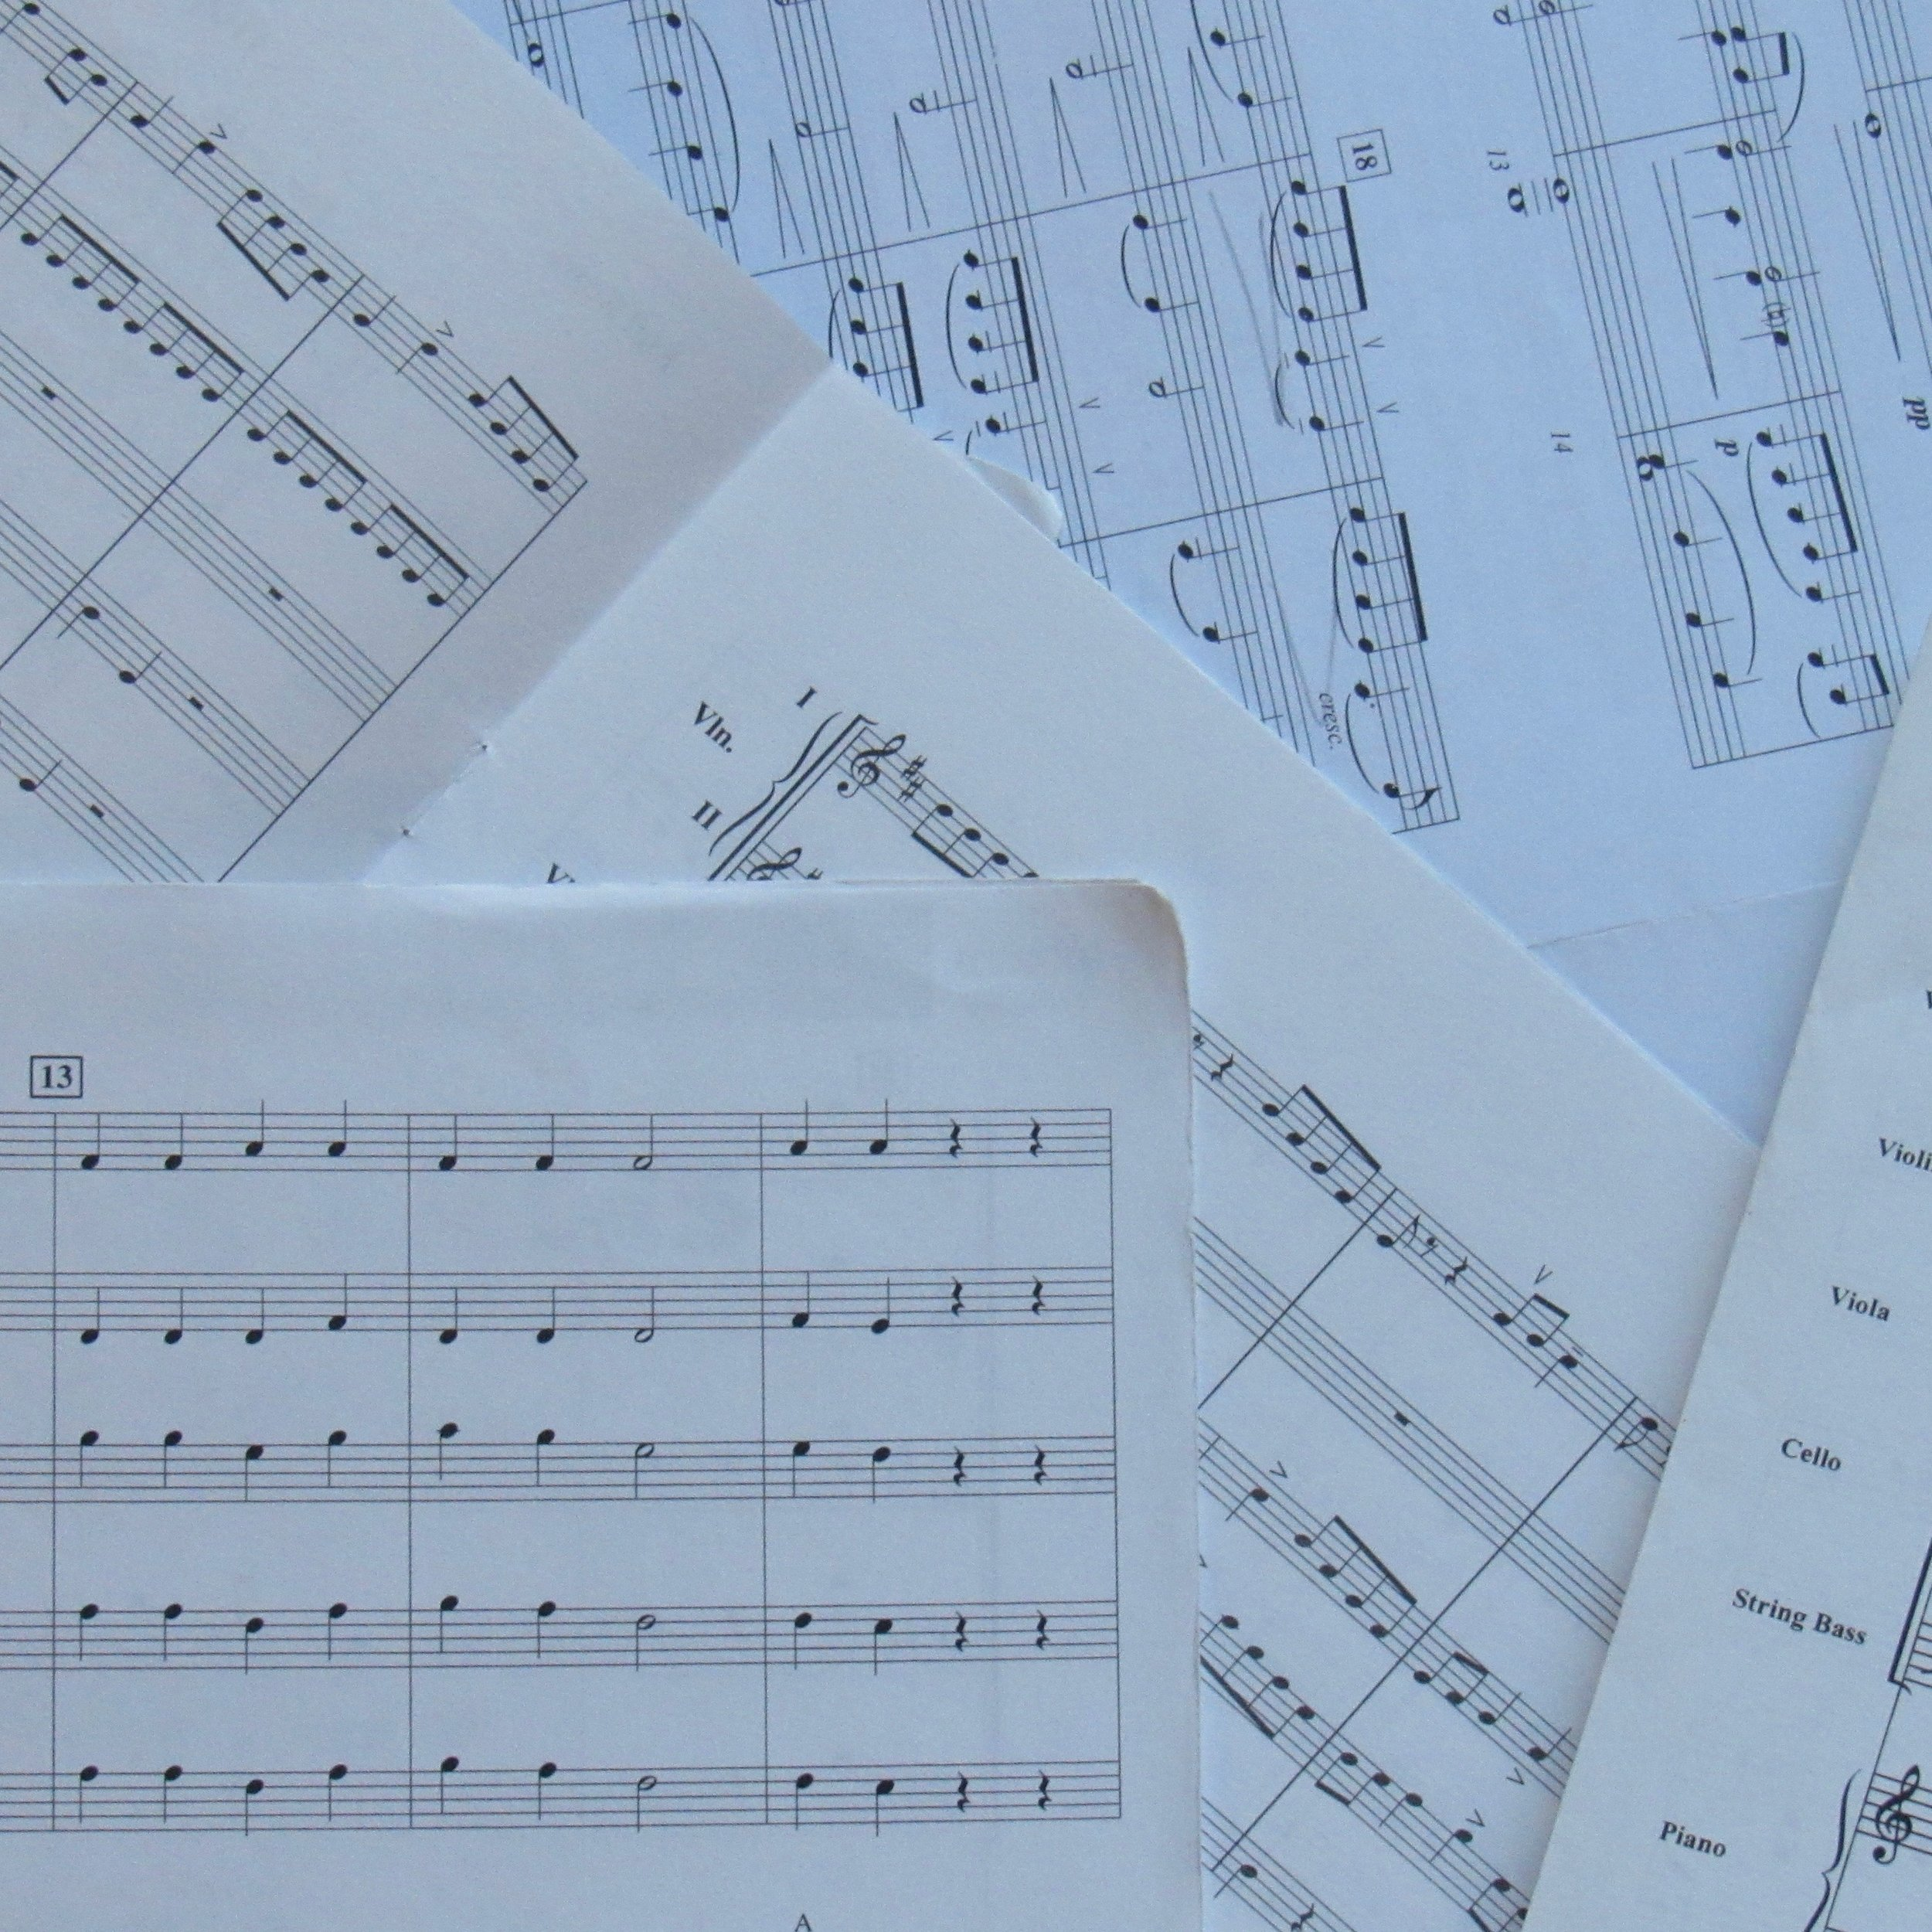 Sheet Music Library